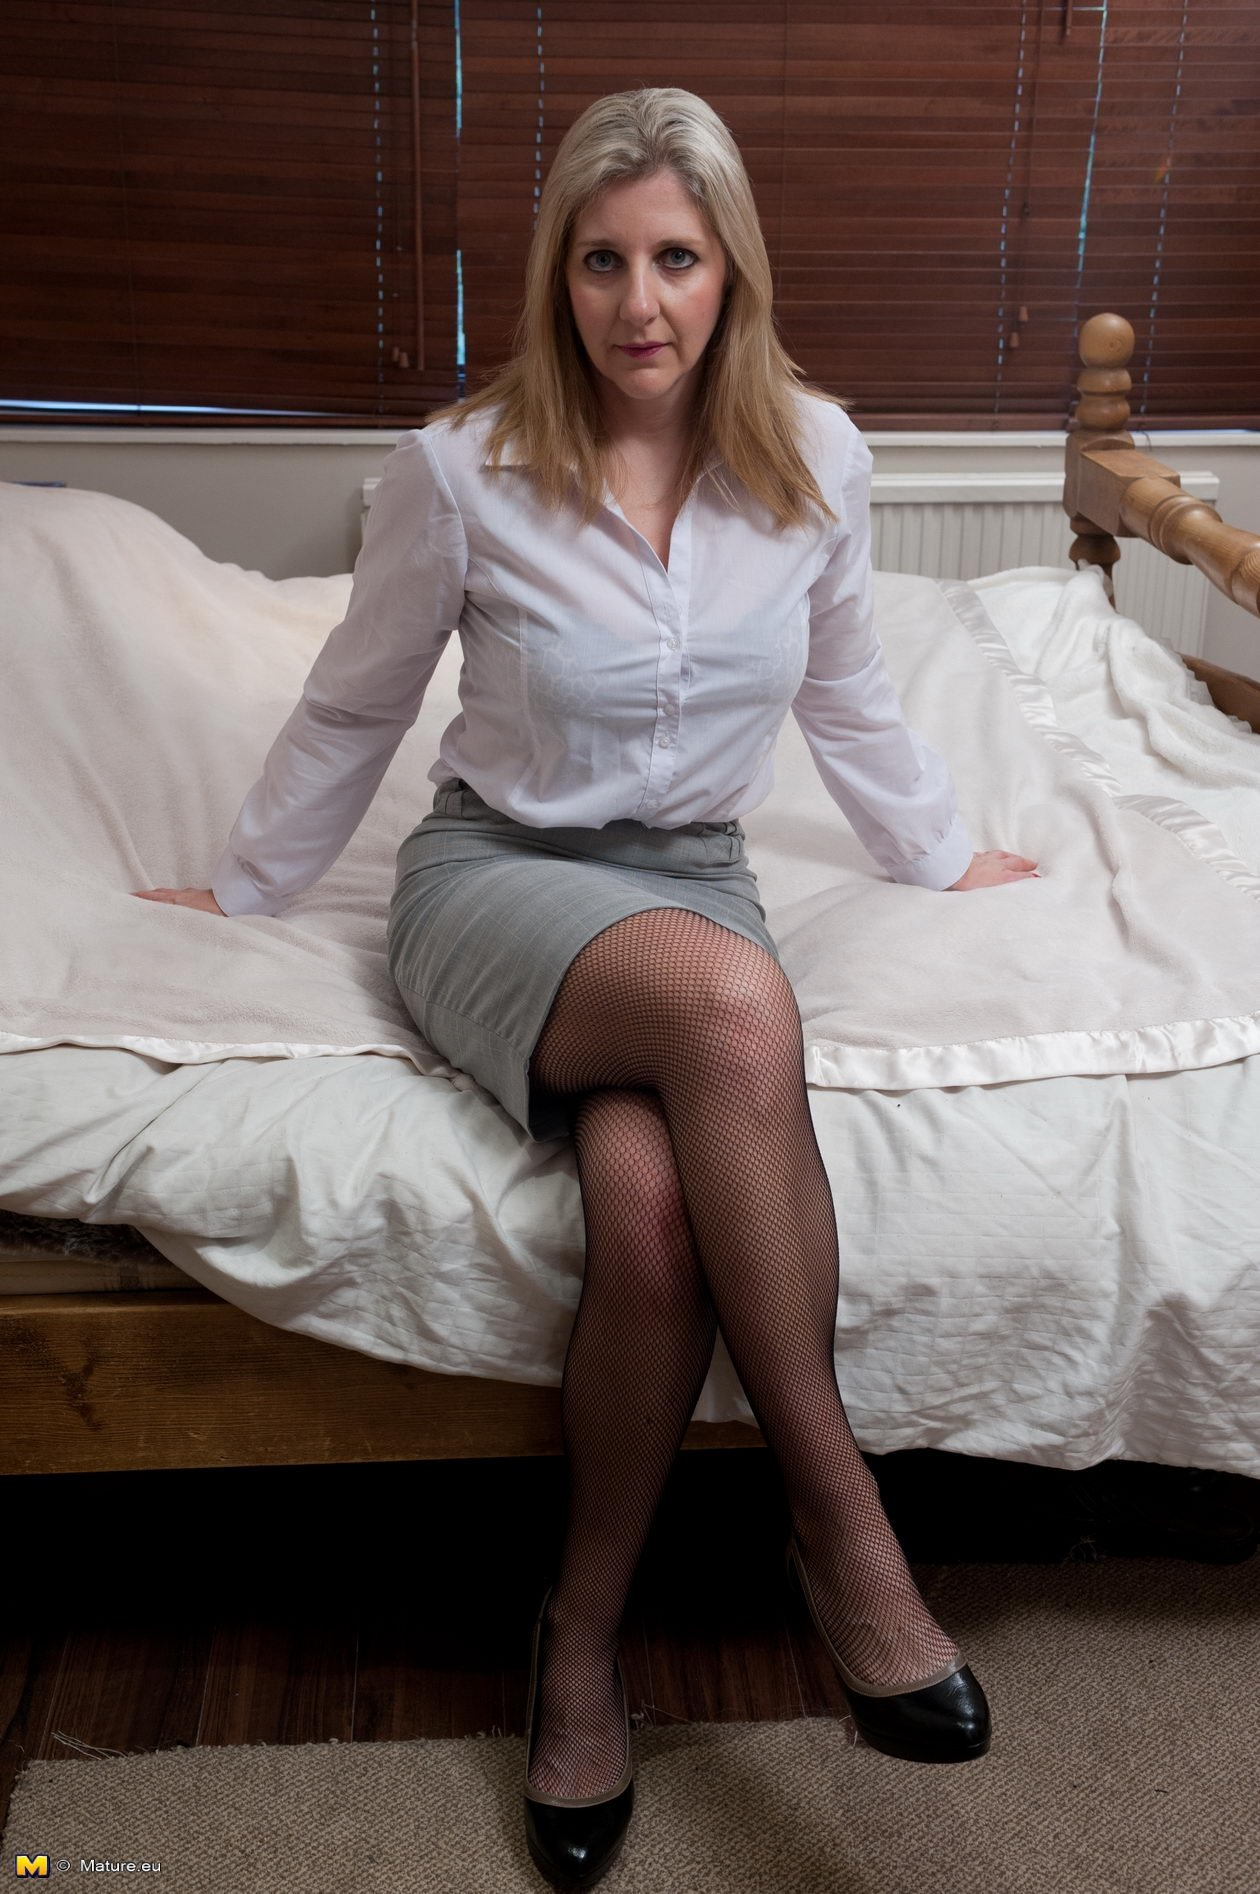 Vintage french mature porn Wife vacation fantacy two guys